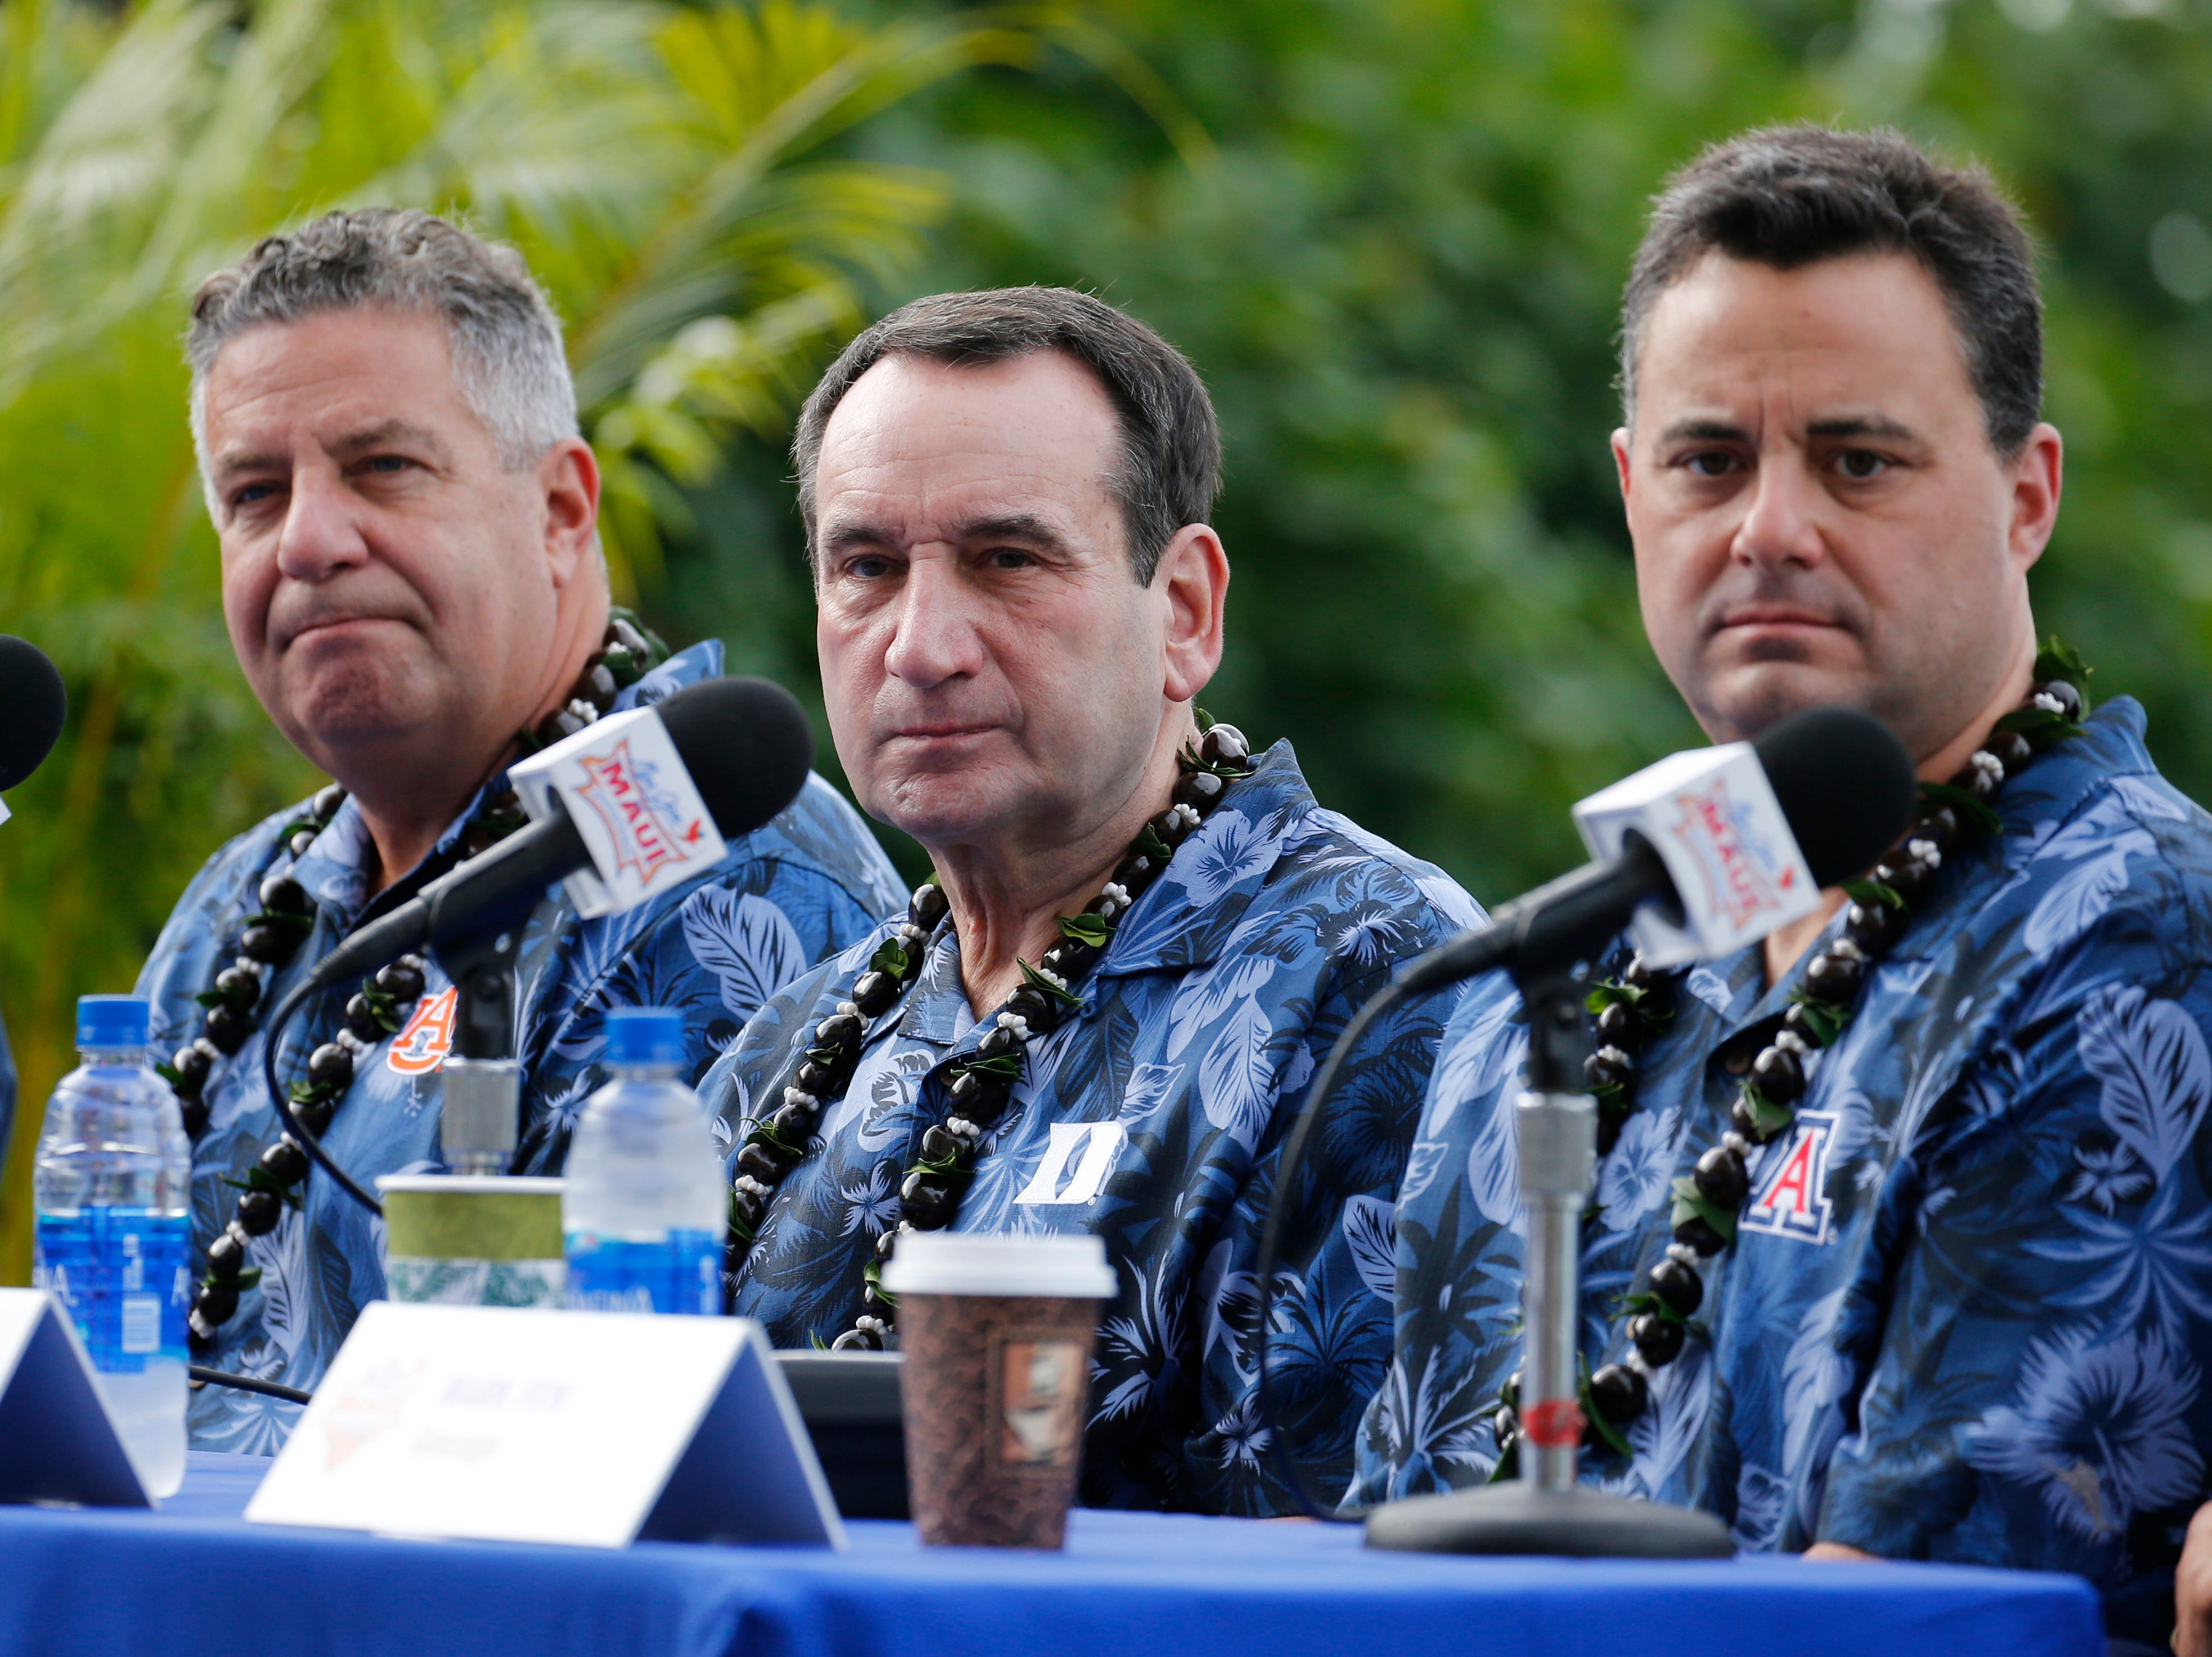 Nov 19, 2018; Lahaina, HI, USA; Duke Blue Devils coach Mike Krzyzewski attends a press conference sitting next to Auburn Tigers coach Bruce Pearl and Arizona Wildcats coach Sean Miller at the Hyatt Regency Resort and Spa before playing against the San Diego Aztecs during round 1 of the Maui Jim Maui Invitational at the Lahaina Civic Center. Mandatory Credit: Brian Spurlock-USA TODAY Sports